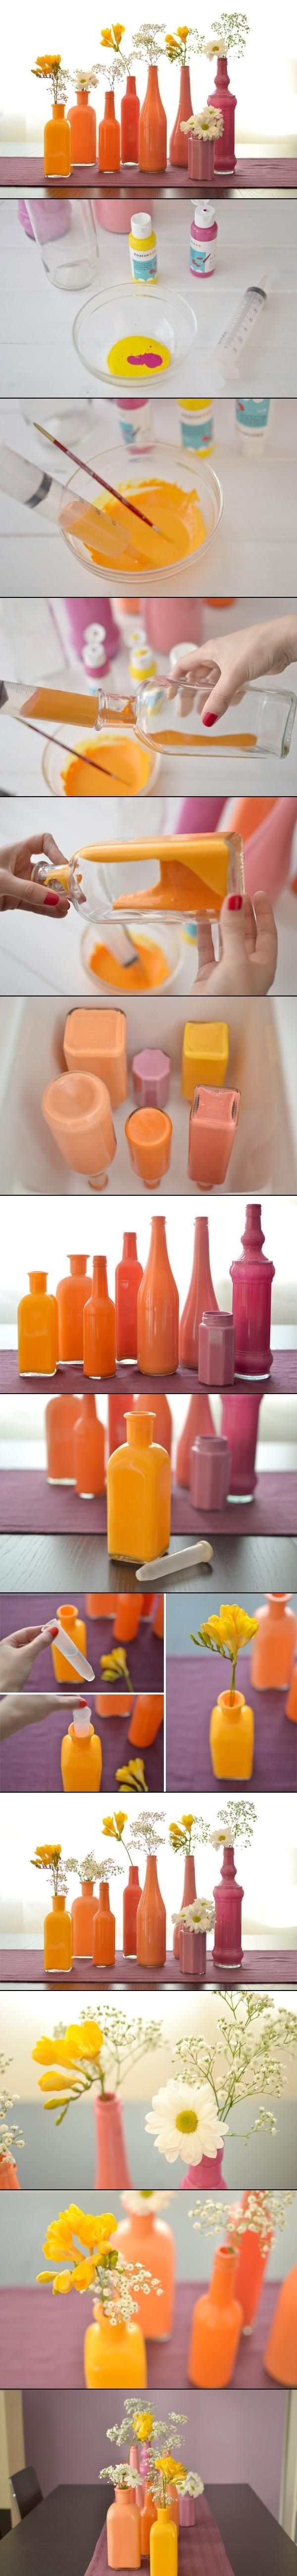 How to make pretty vases